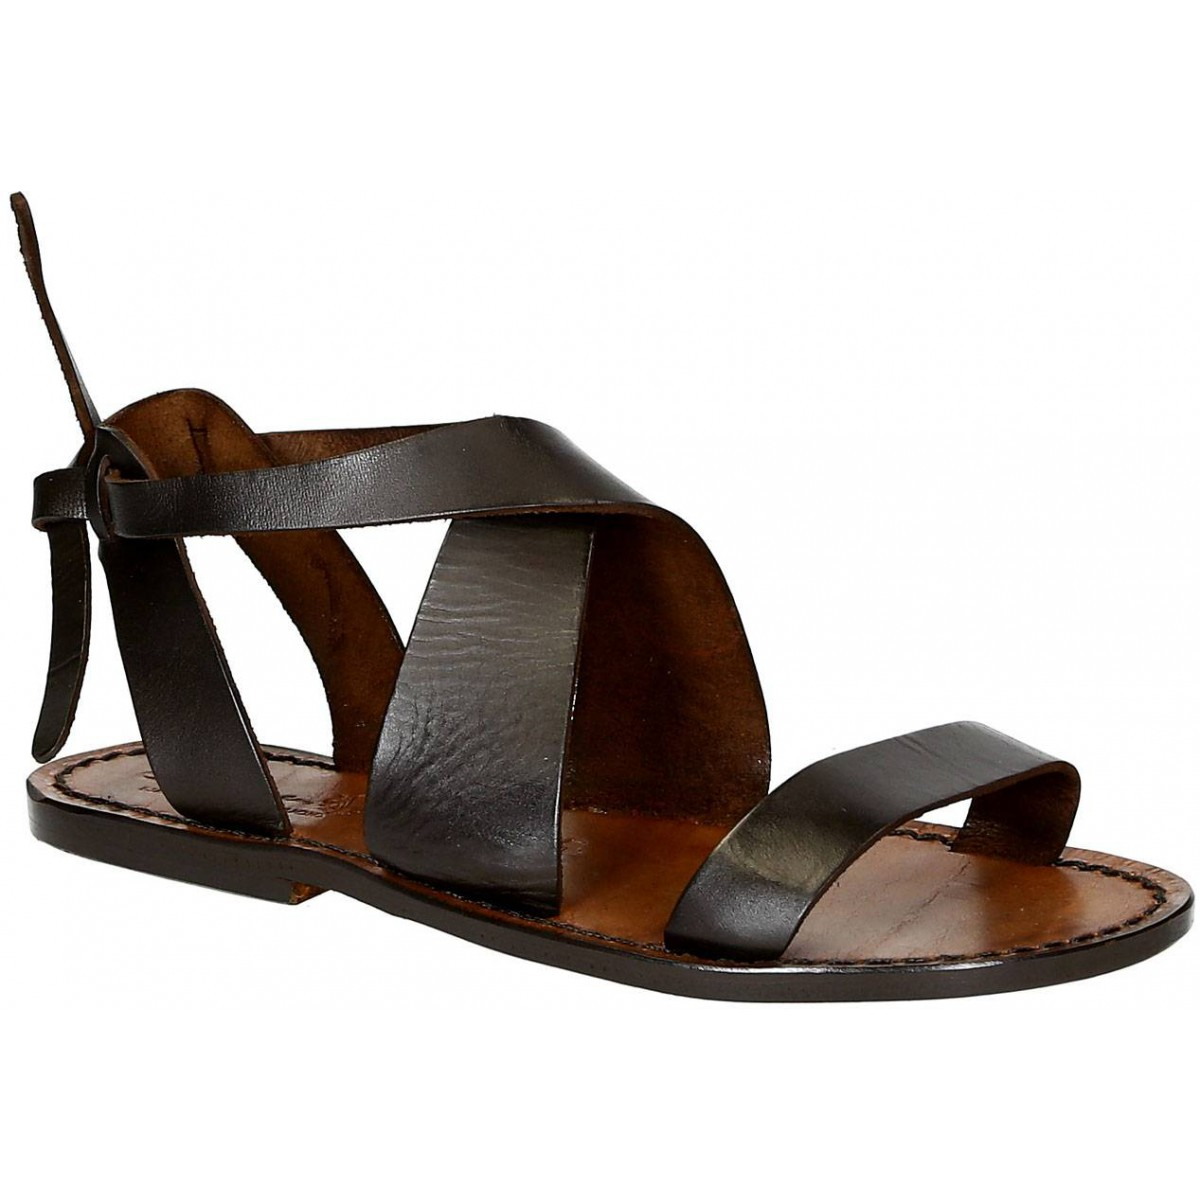 079e8ce5a2bf Womens sandals in dark brown leather handmade in Italy. Loading zoom